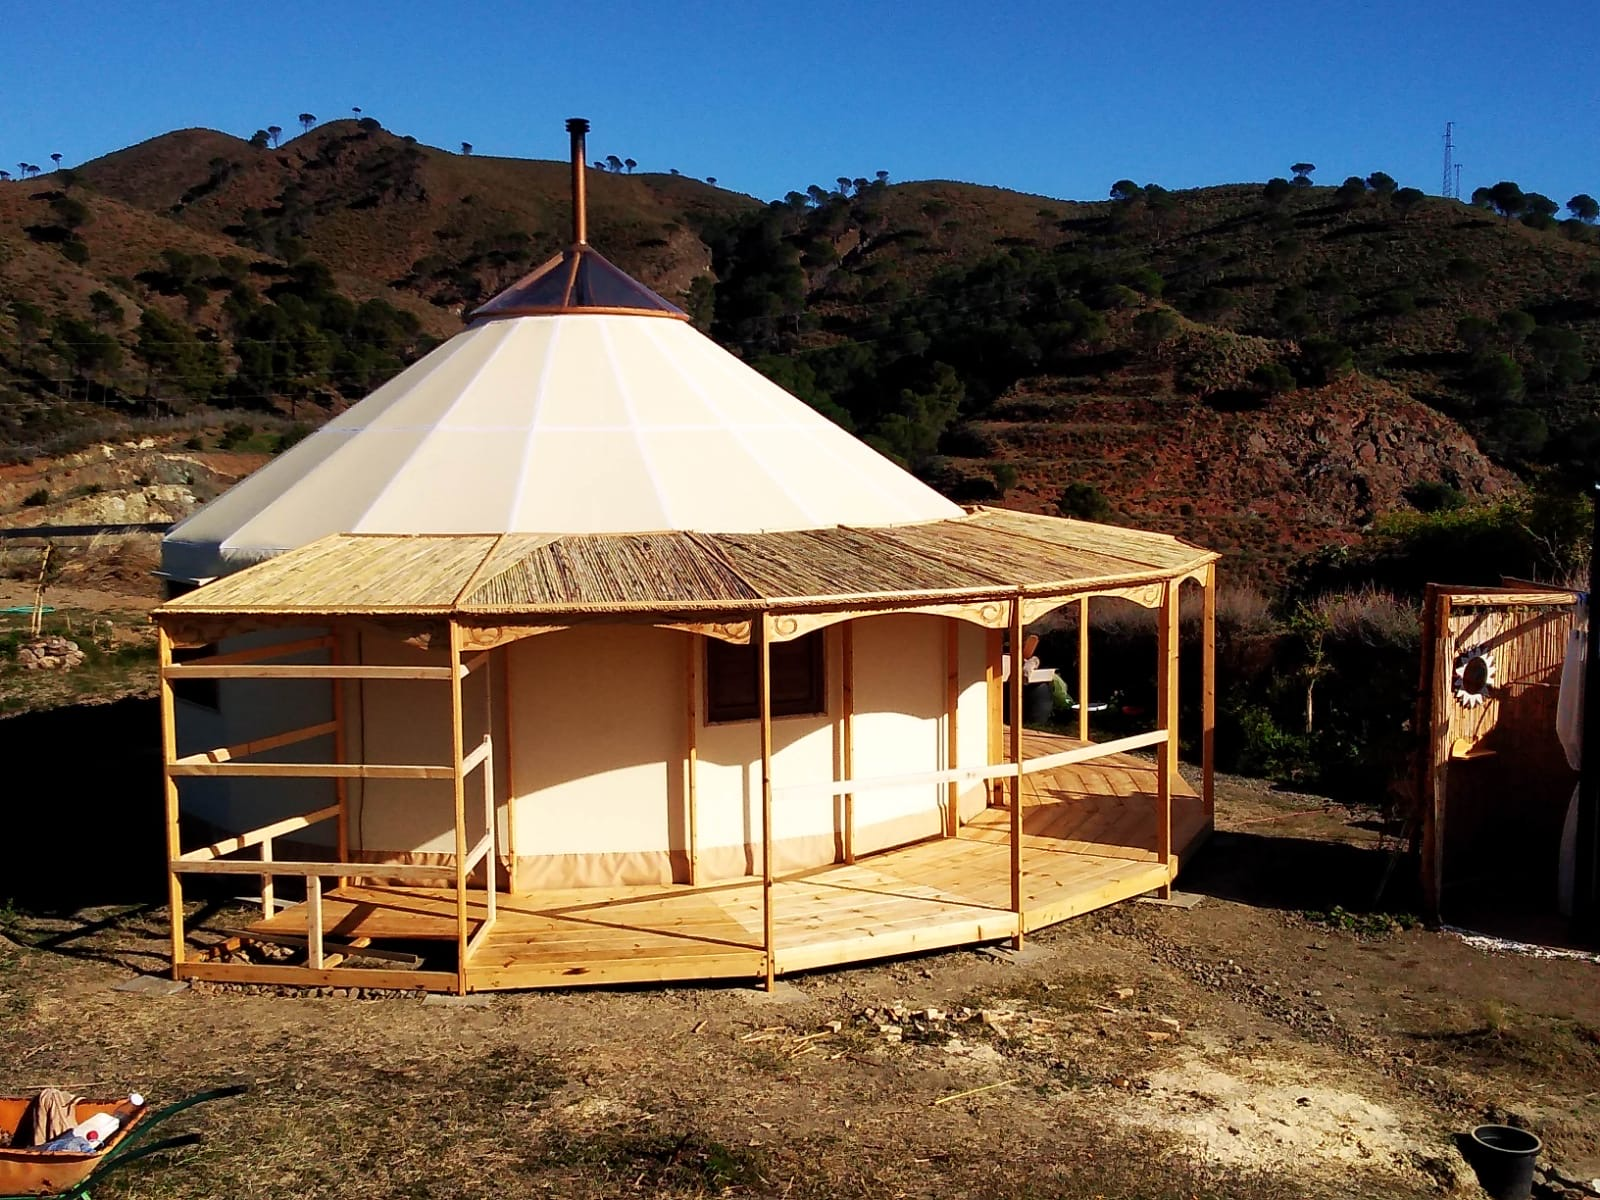 Yurt with a Wooden Balcony